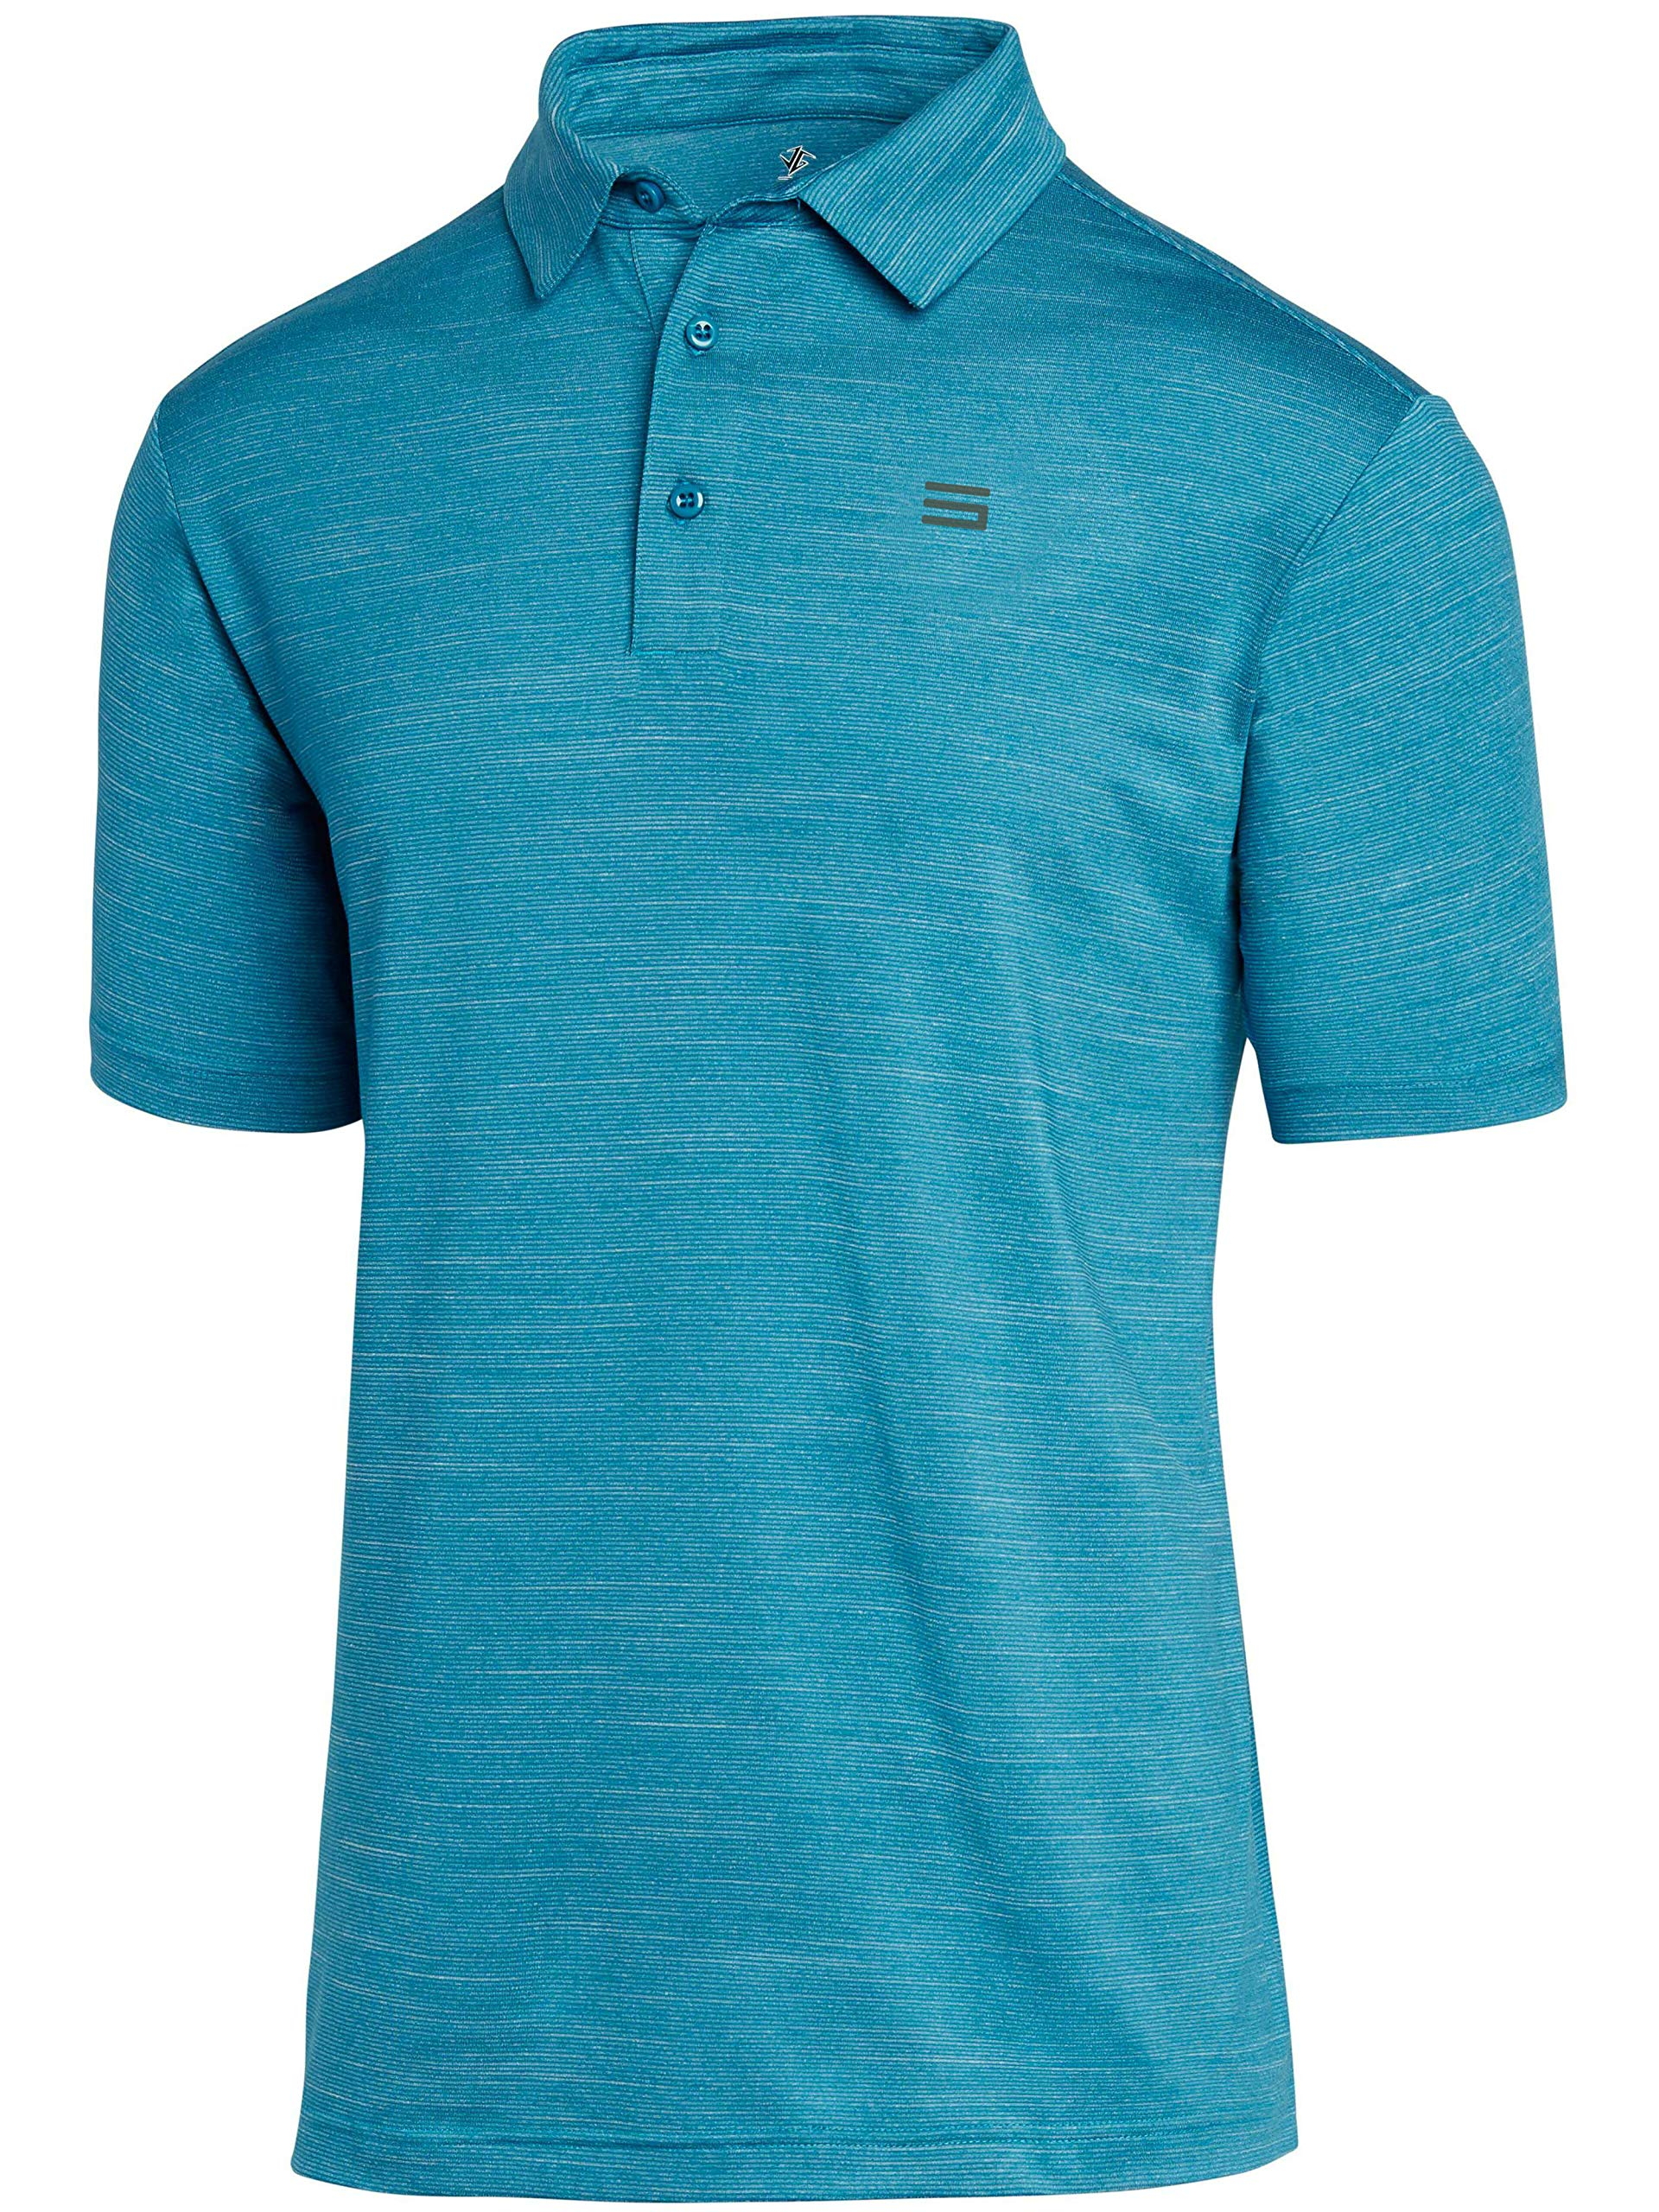 Three Sixty Six Golf Shirts for Men - Dry Fit Short-Sleeve Polo, Athletic Casual Collared T-Shirt Aqua Blue by Three Sixty Six